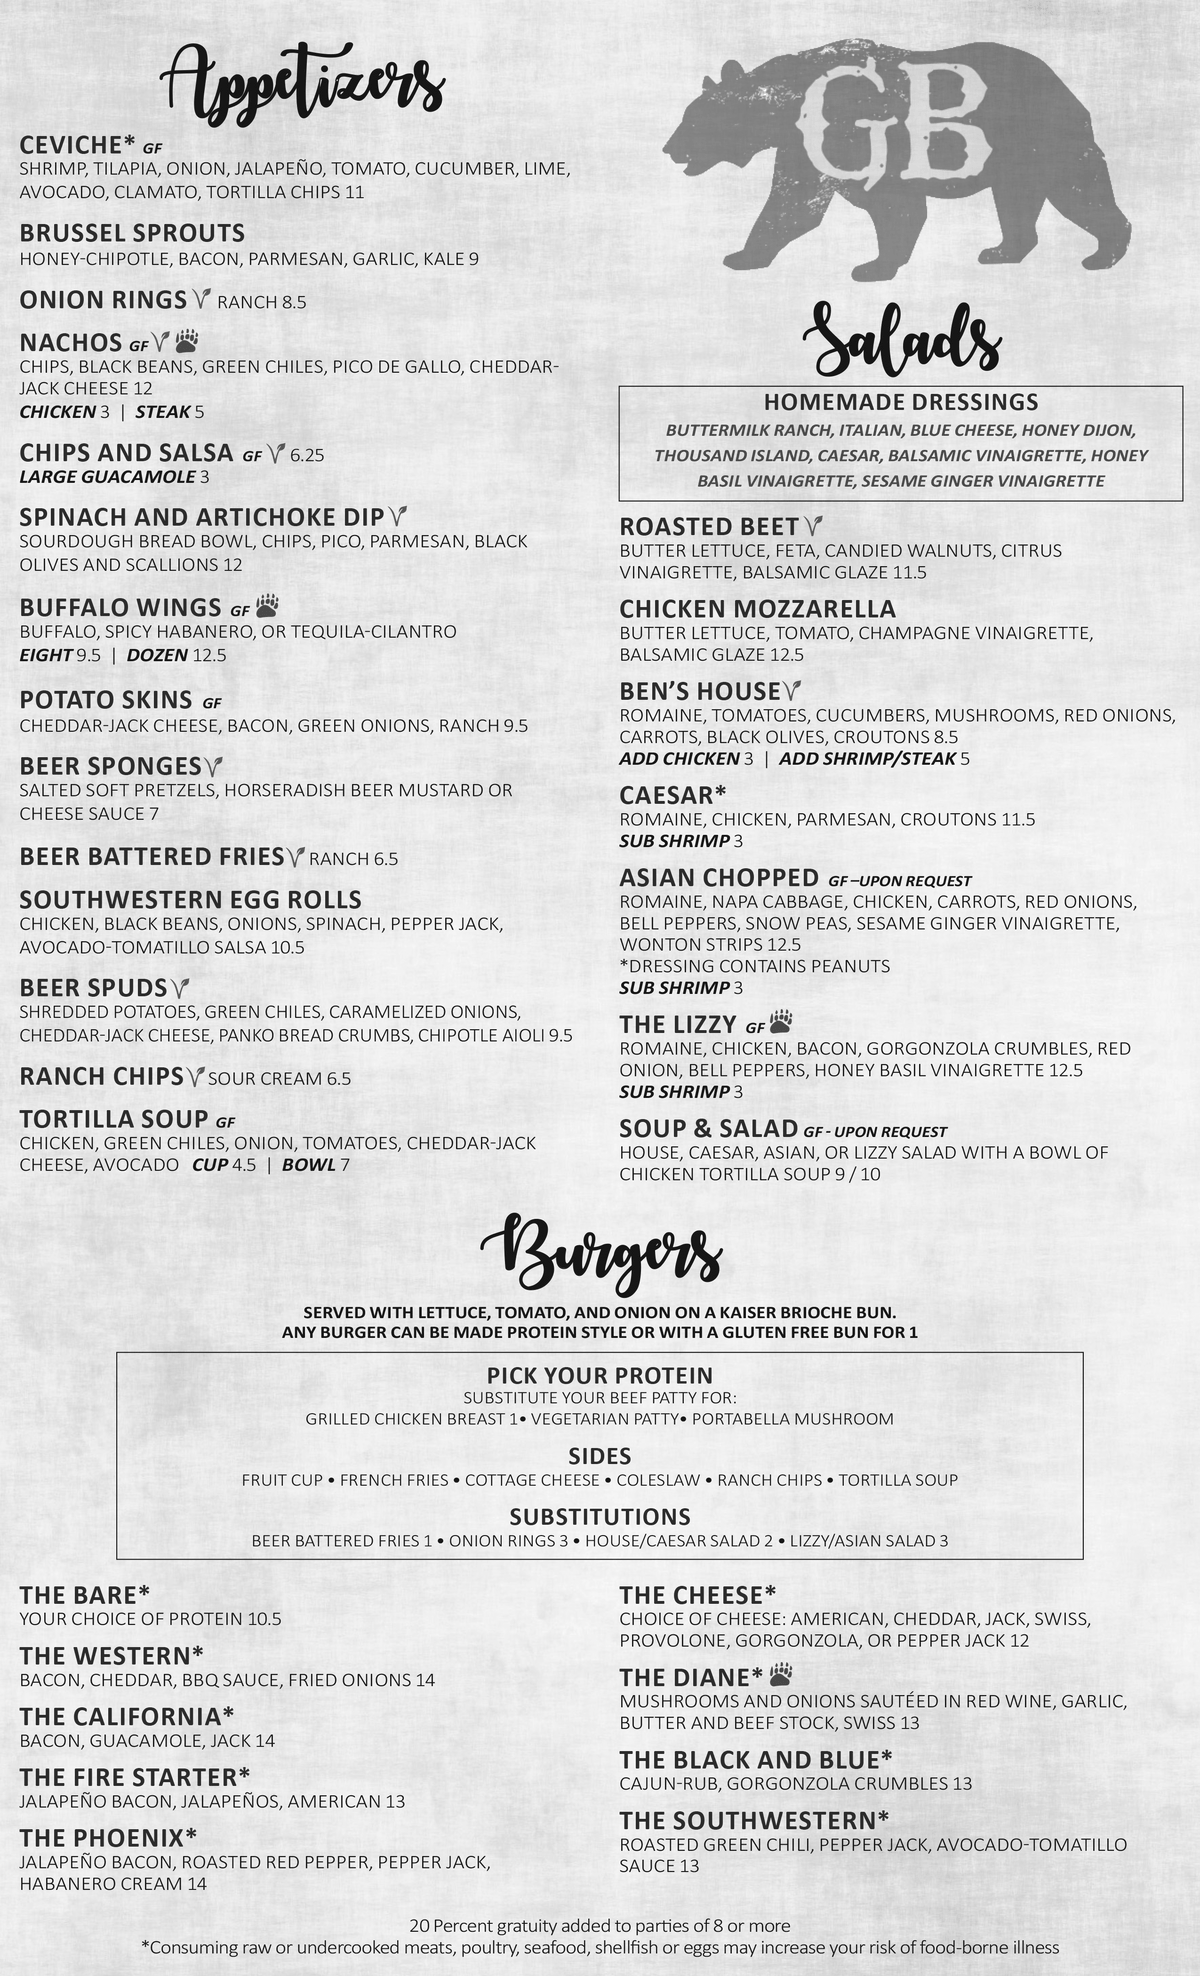 Menu - Appetizers, Burgers, and Salads